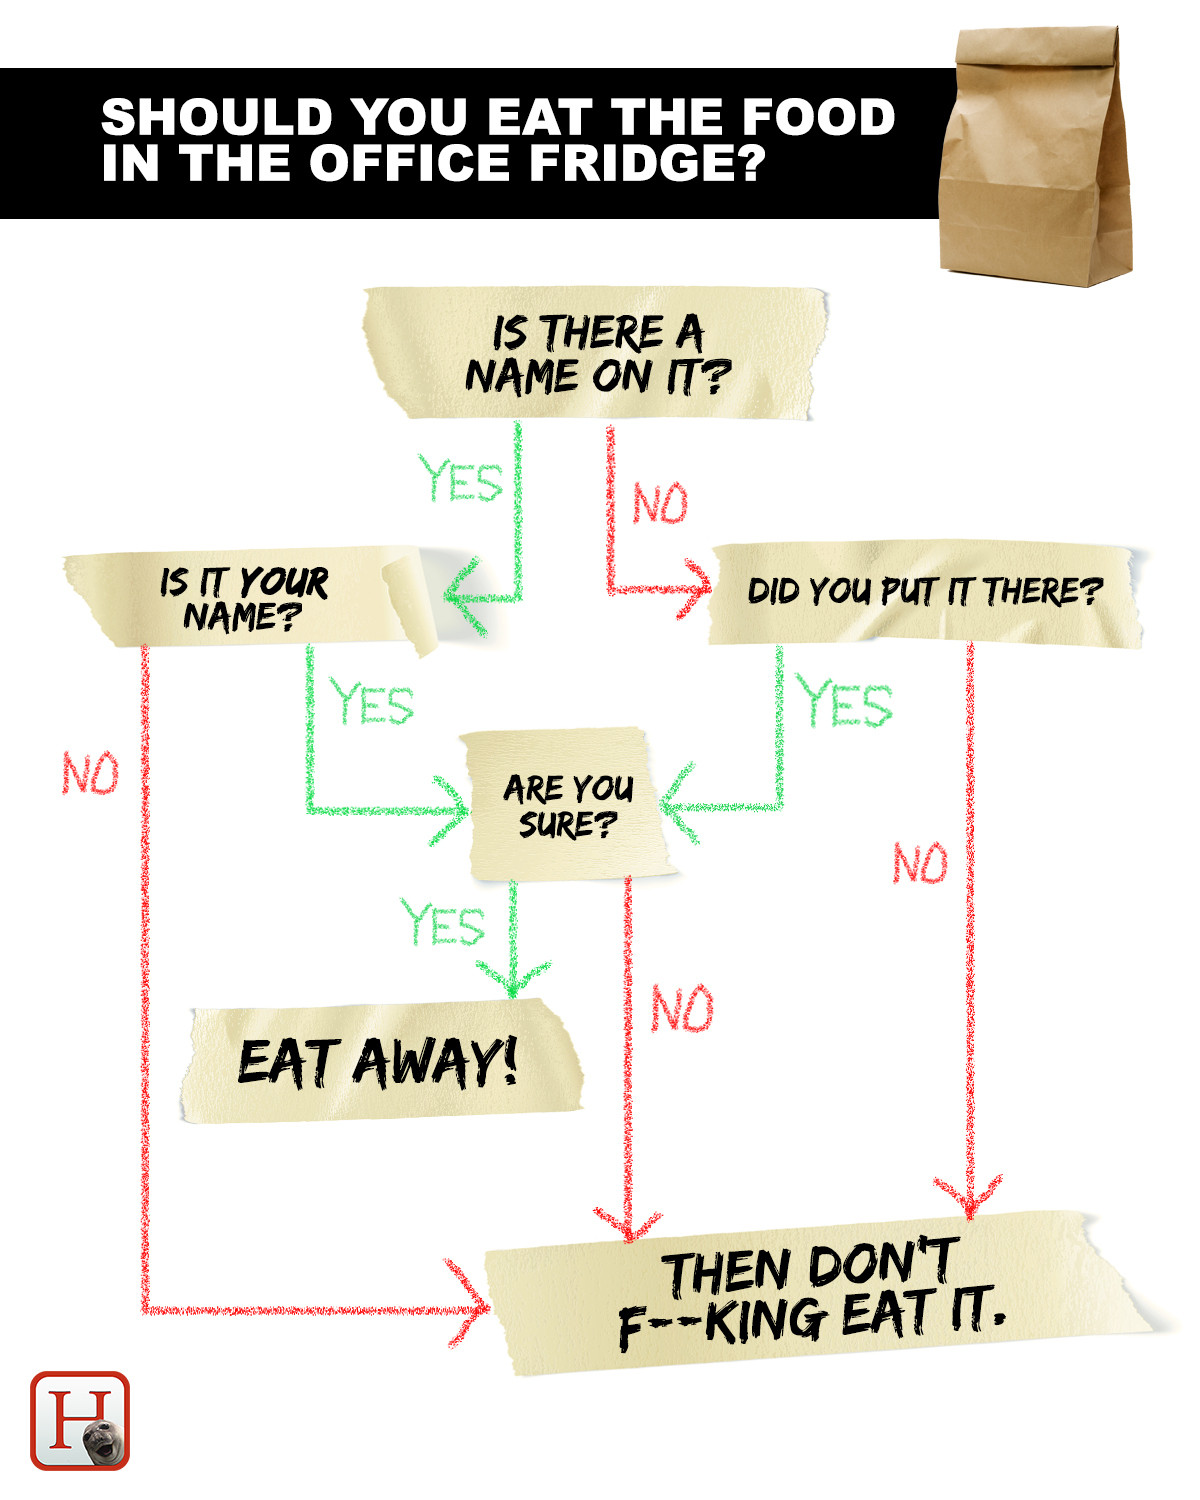 Cool Office Fridge Flowchart – Fight Food Theft | US Food ...